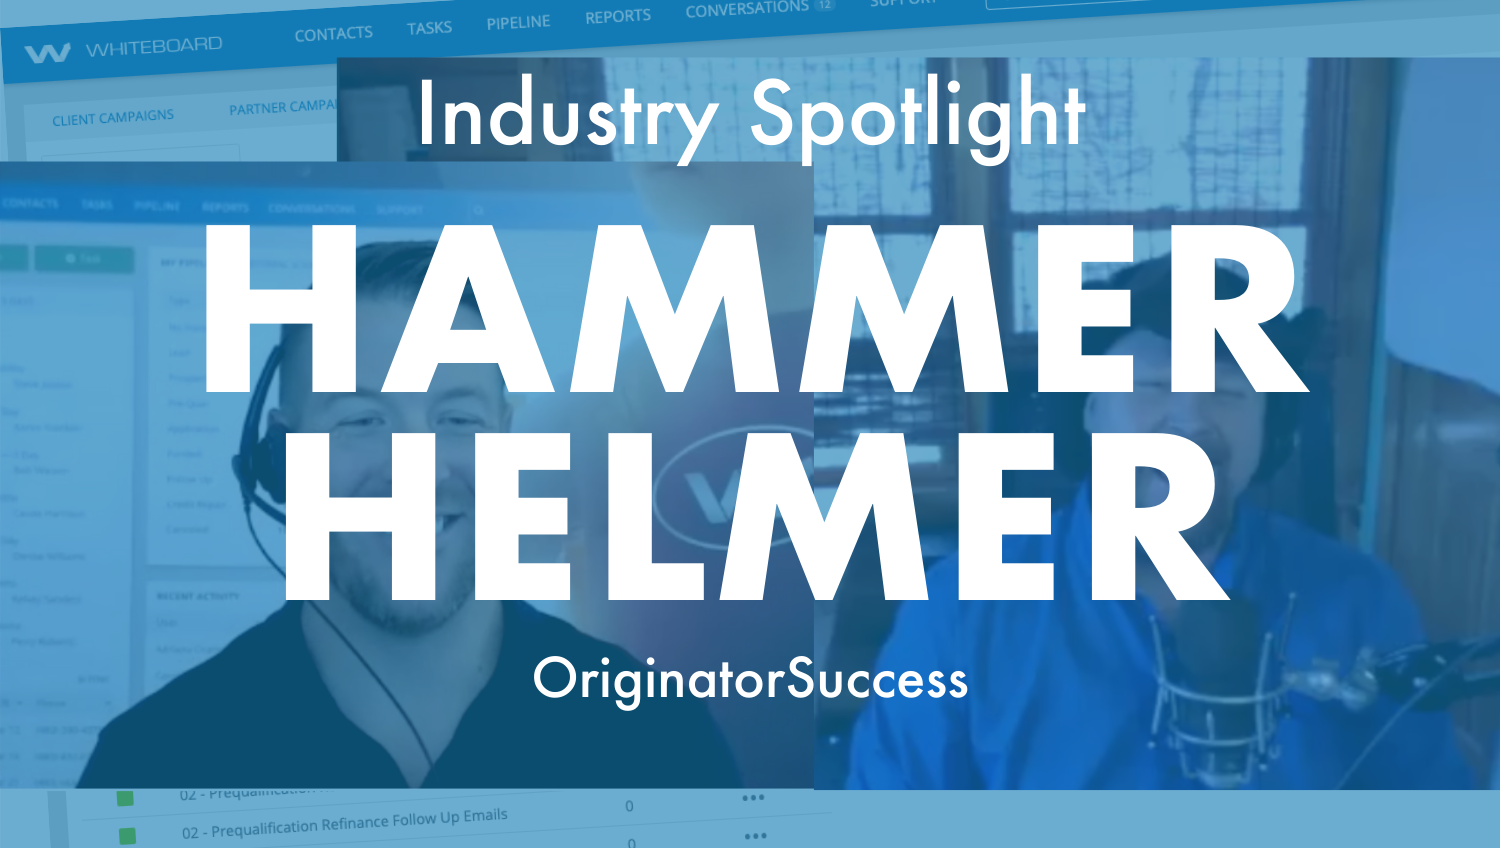 Blue overlay over a photo of Hammer Hemler talking with Kevin Ducey of Whiteboard CRM